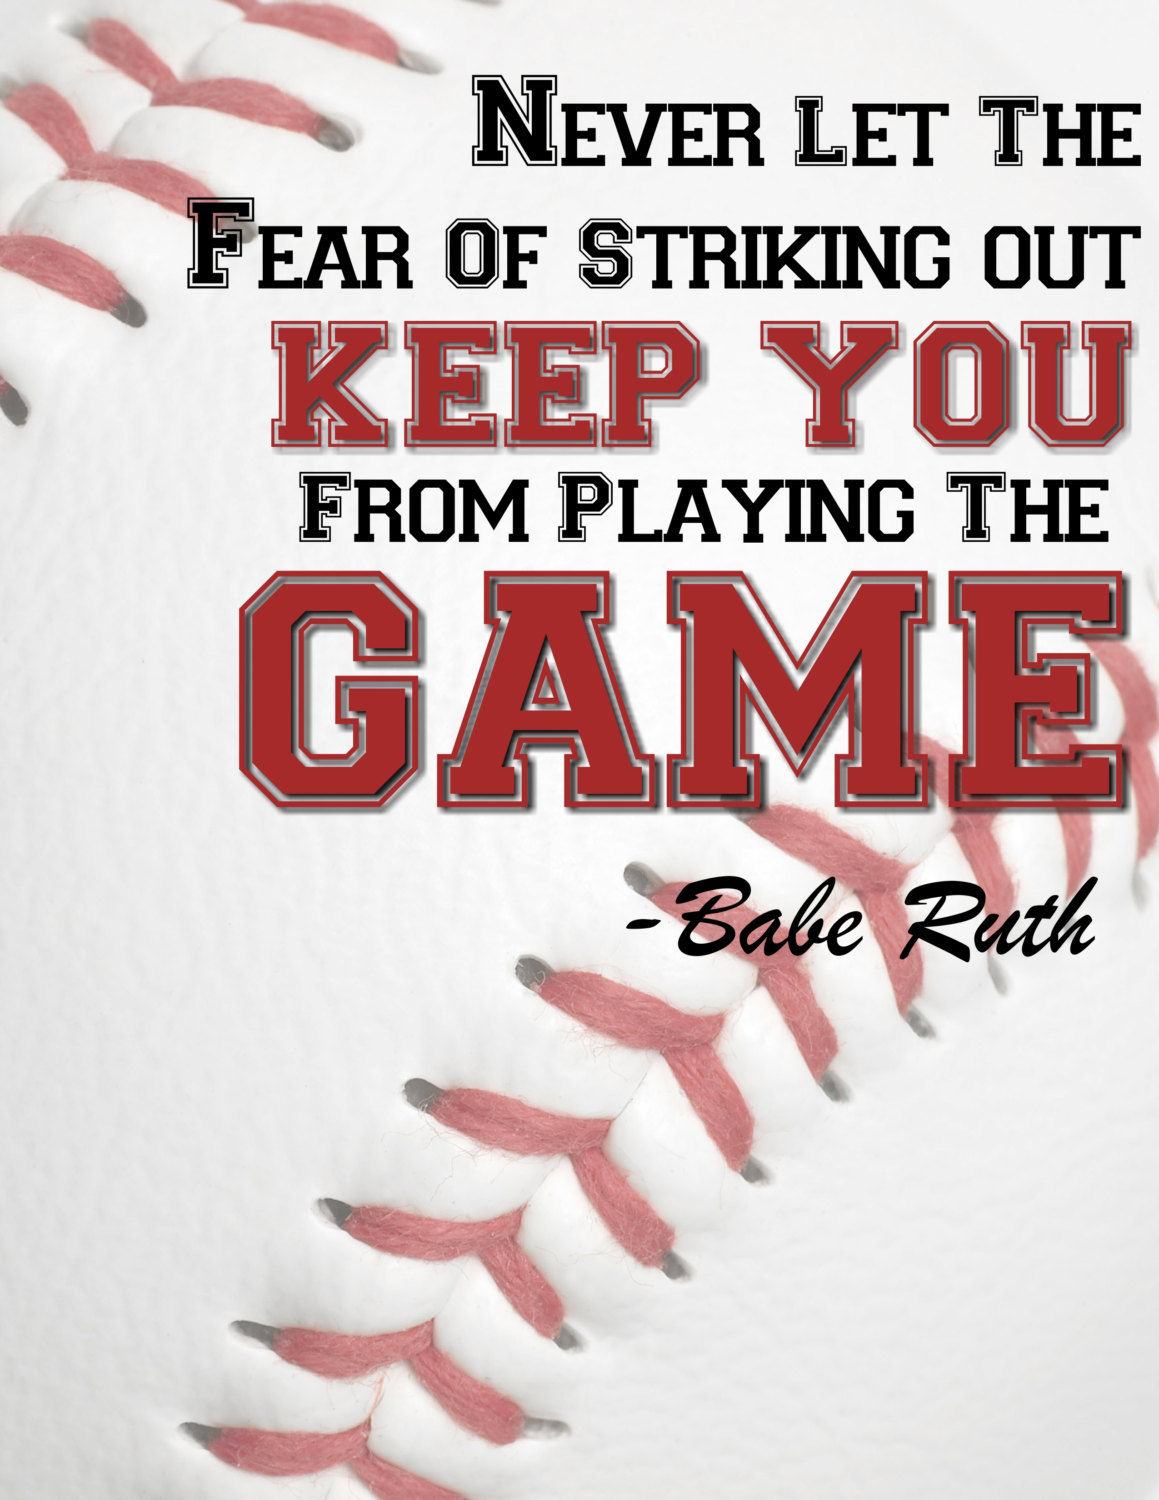 Baseball Love Quotes Babe Ruth Quote Pictures Photos And Images For Facebook Tumblr